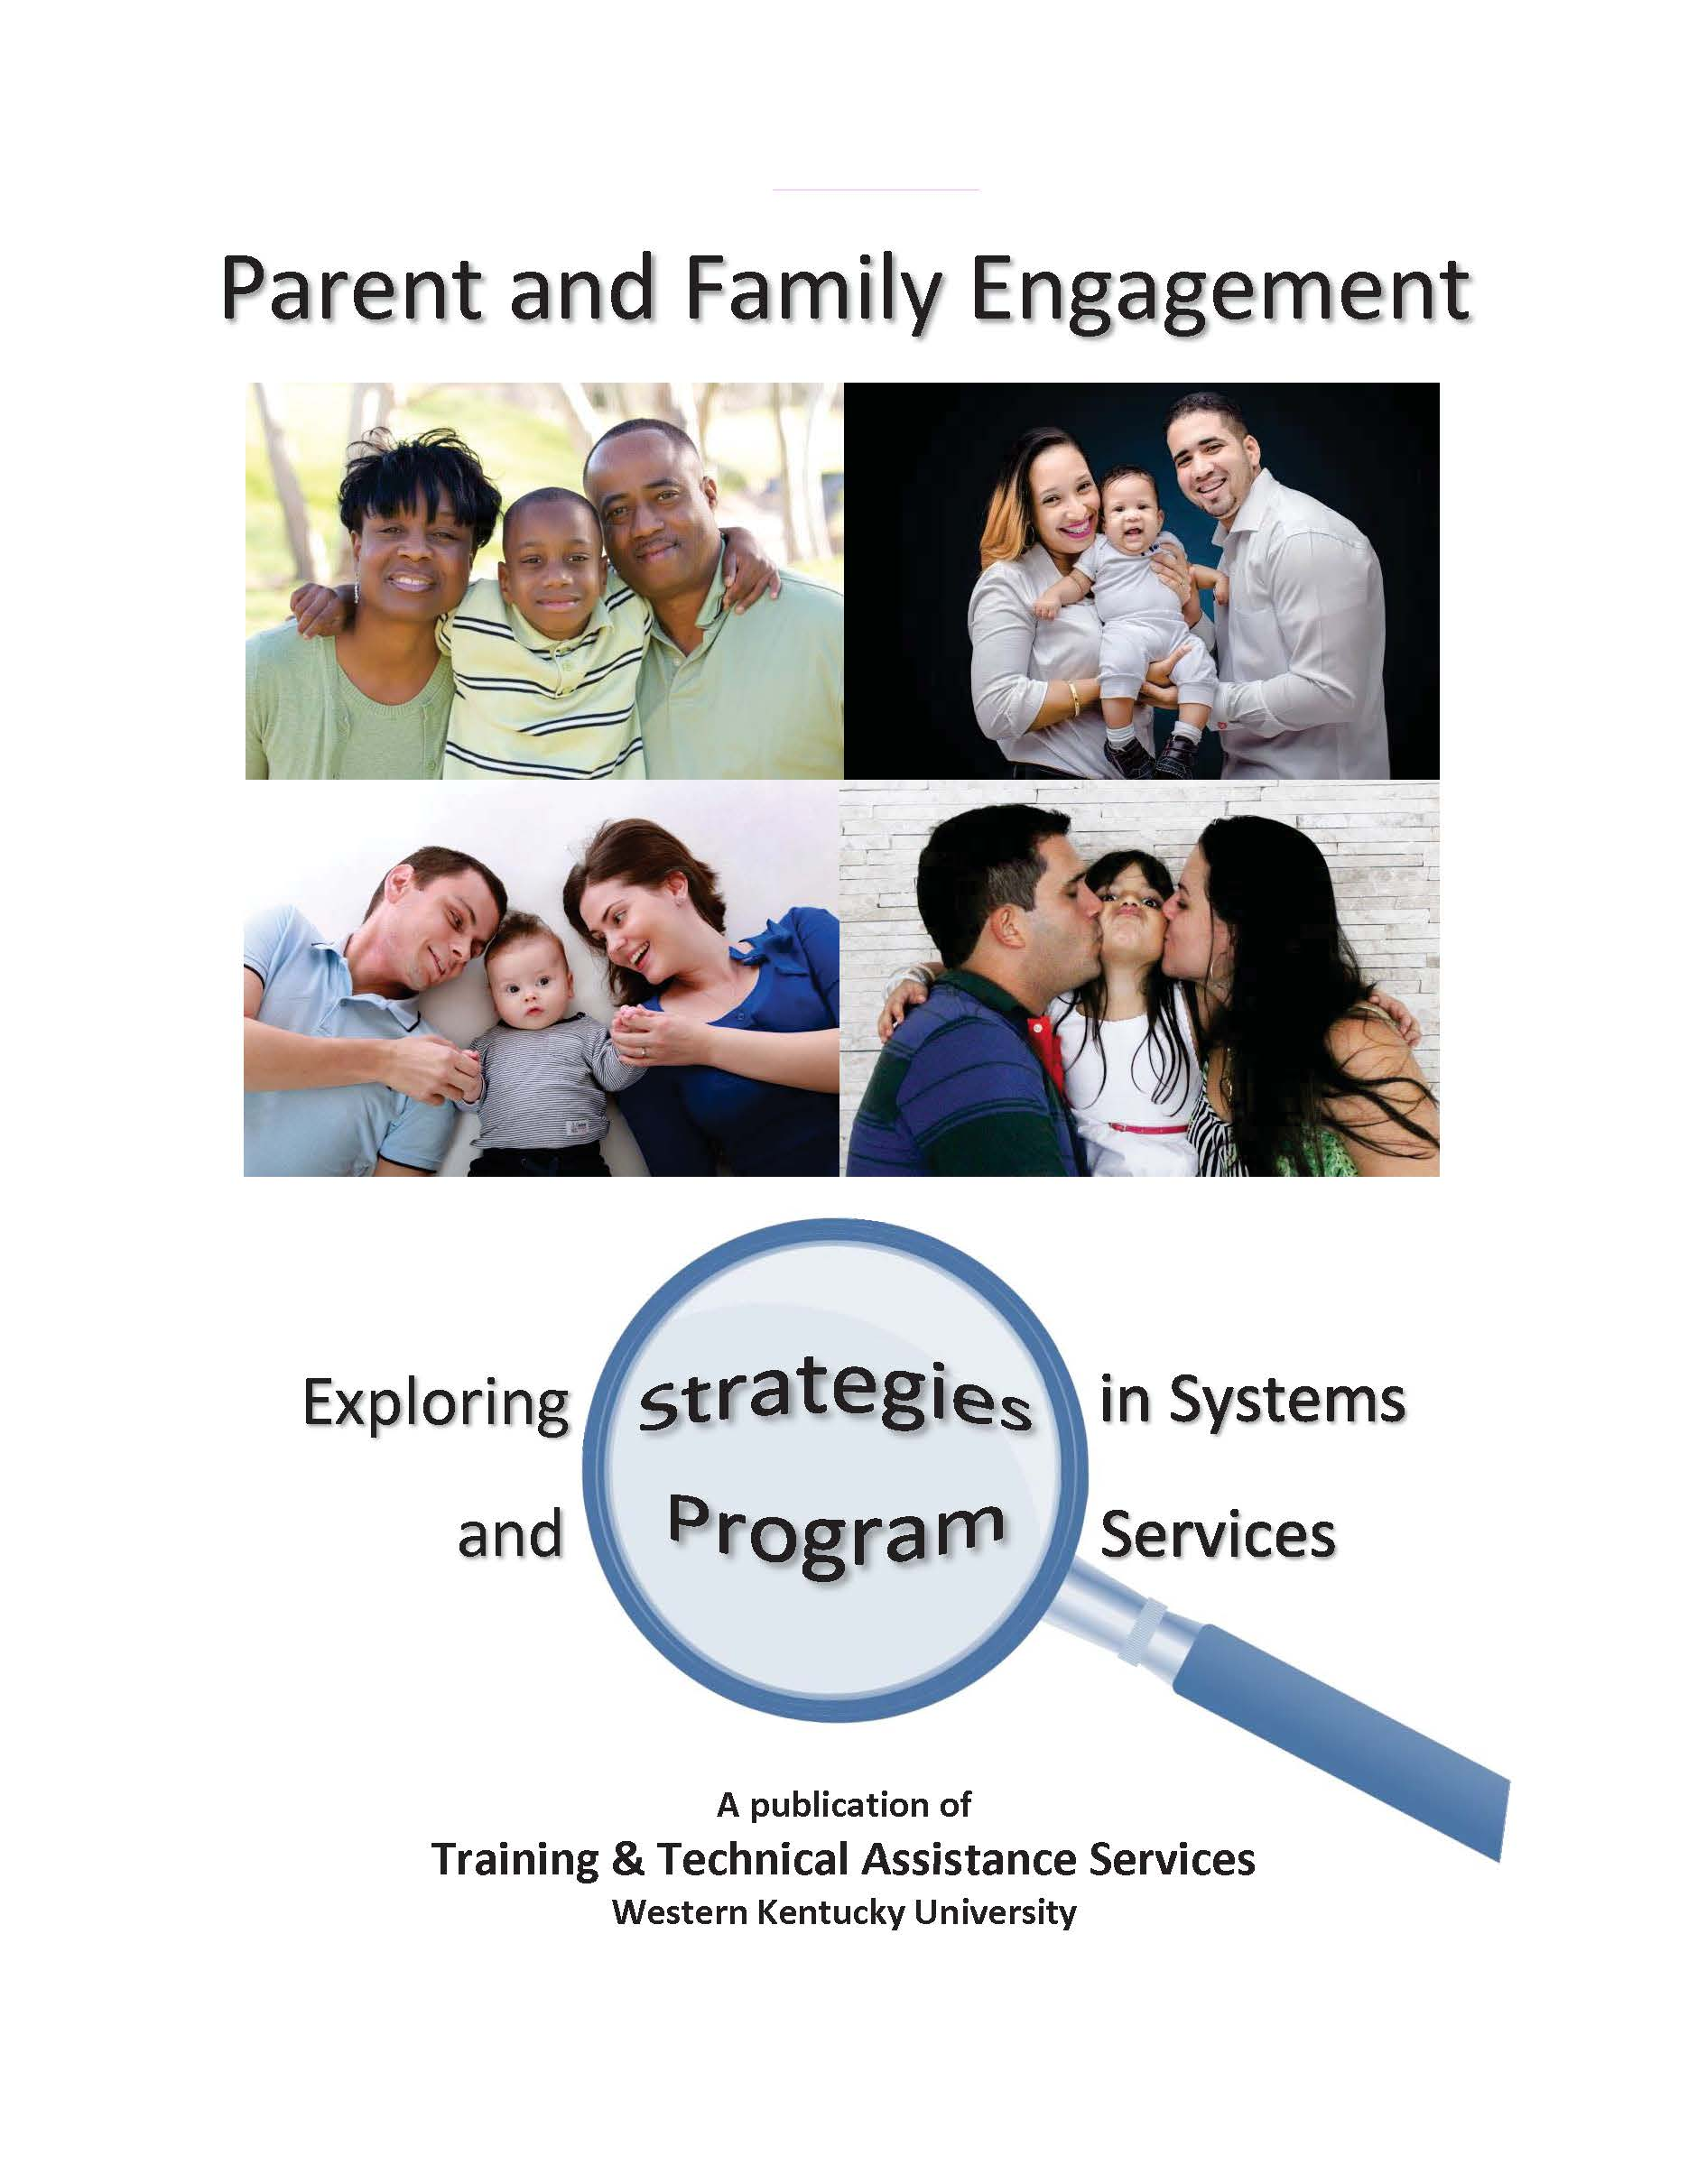 Parent and Family Engagement book cover